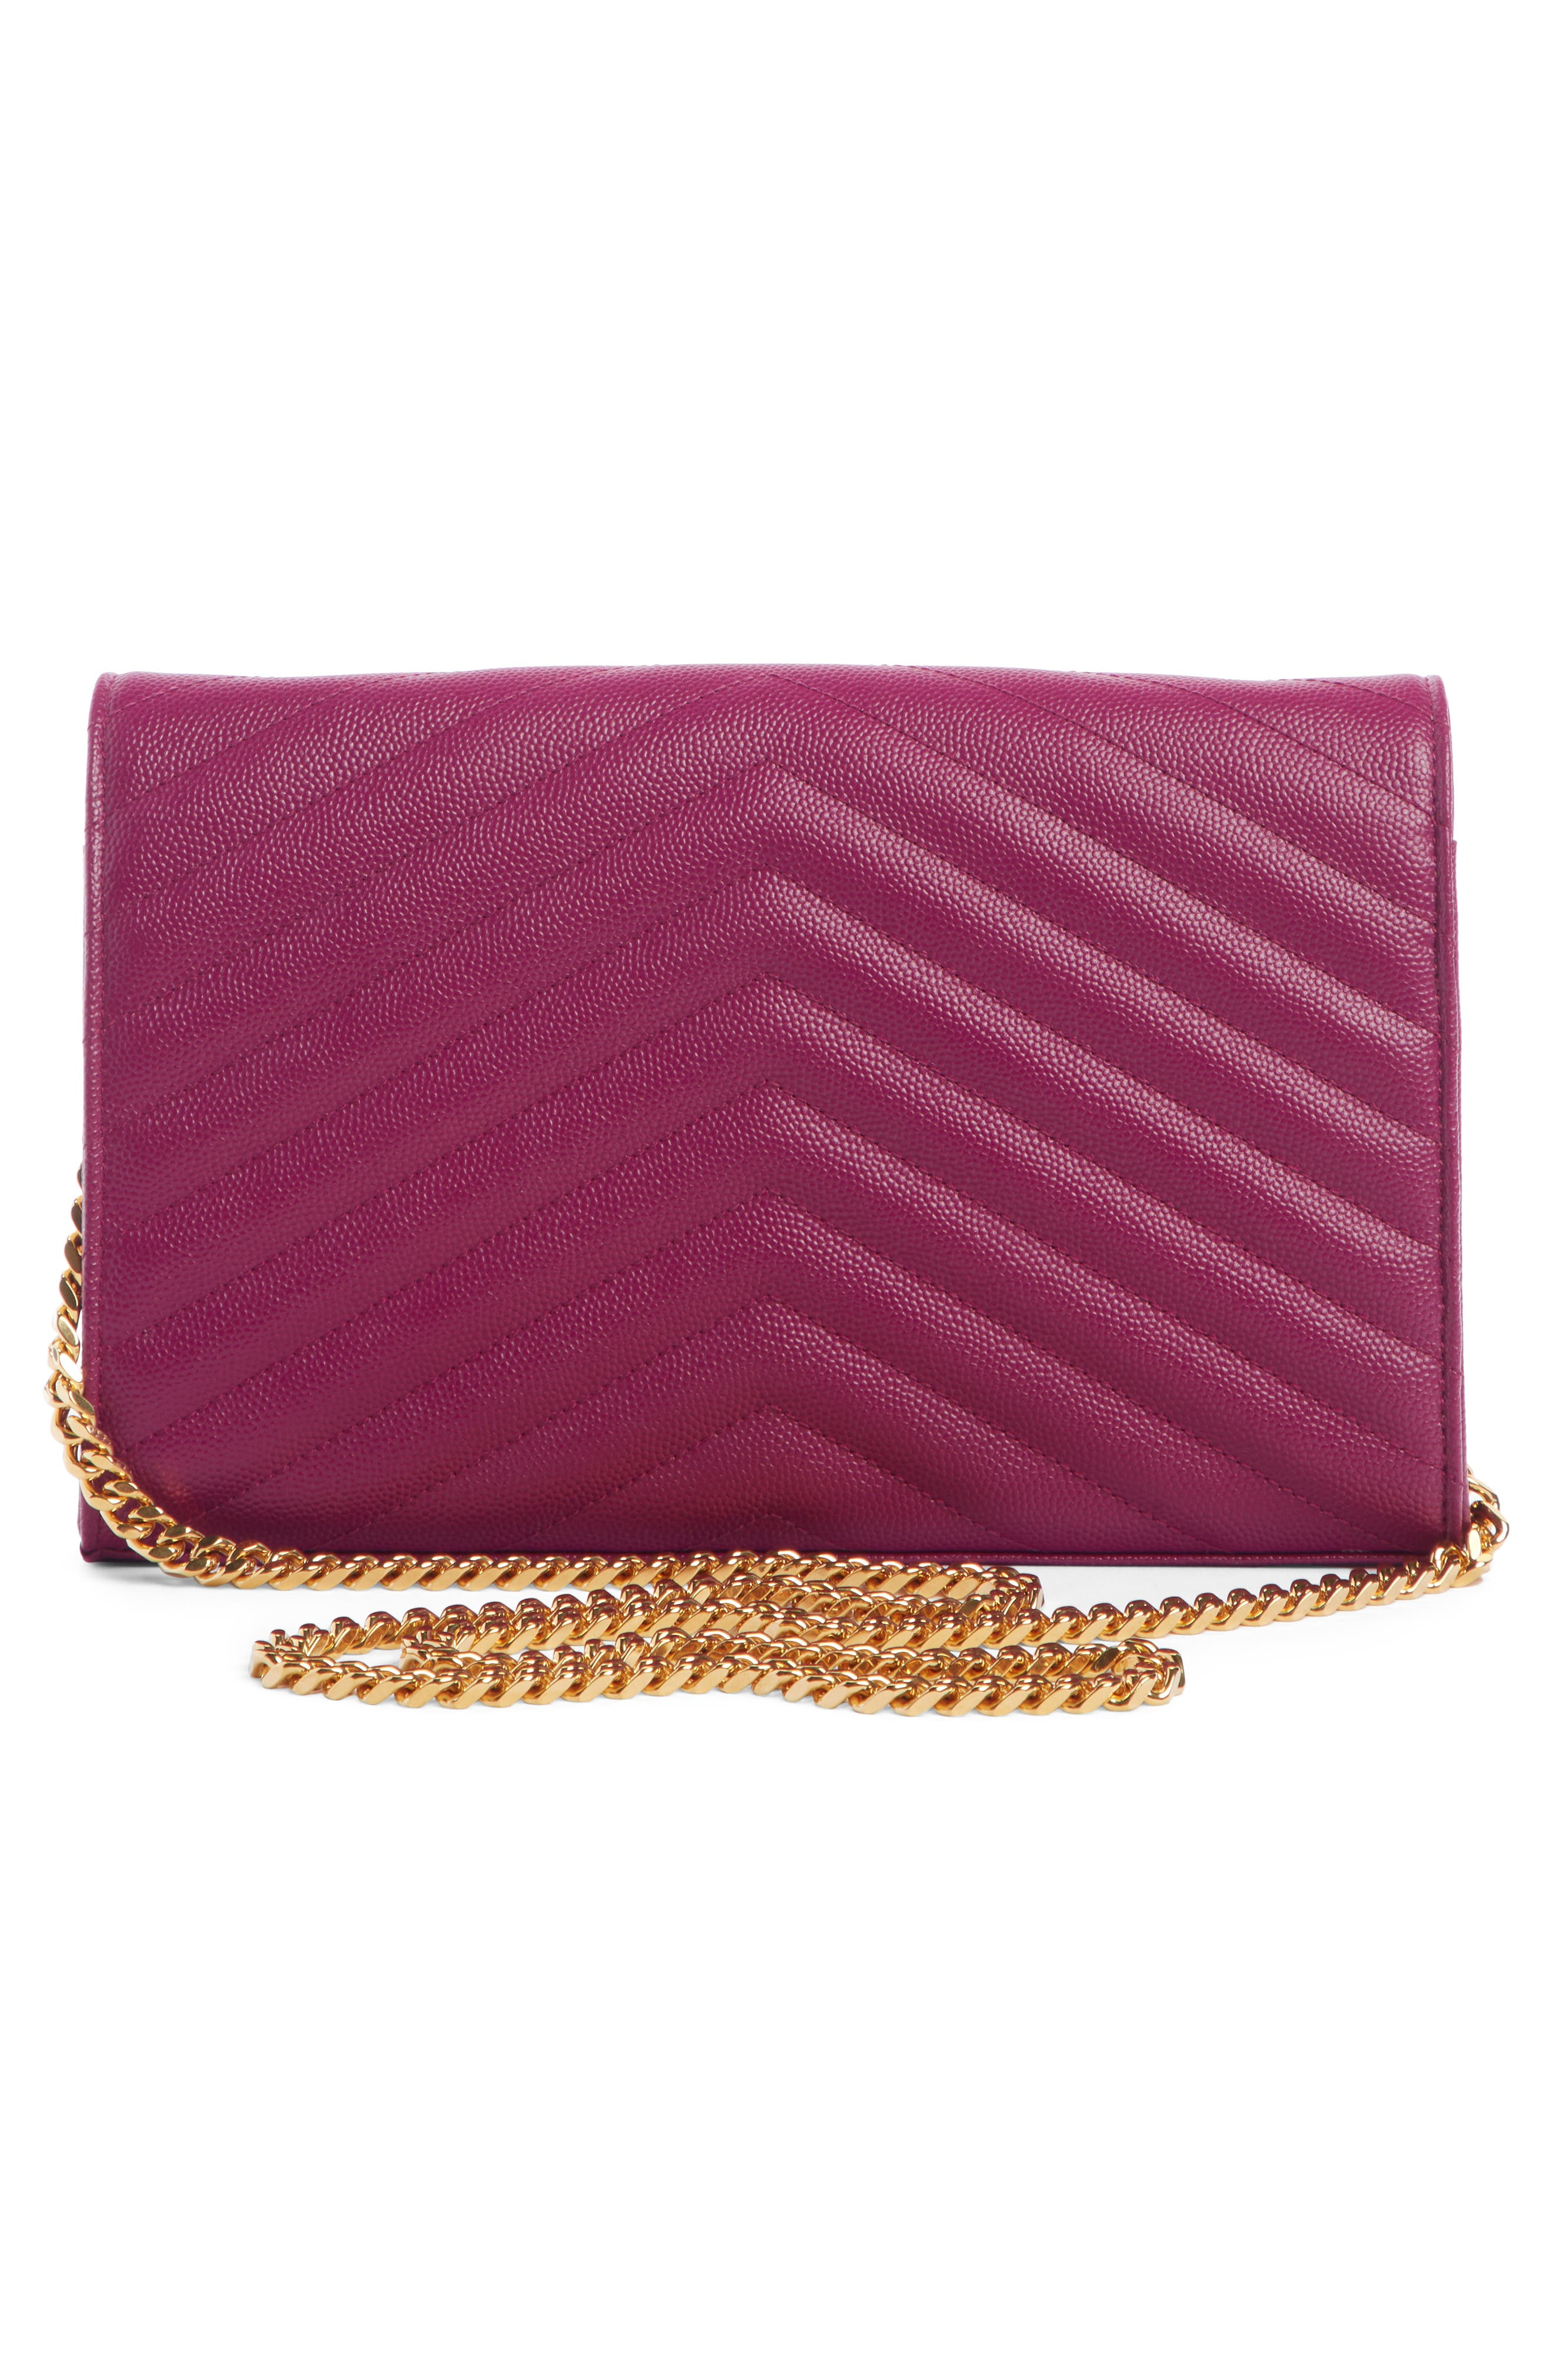 SAINT LAURENT, Large Monogram Quilted Leather Wallet on a Chain, Alternate thumbnail 2, color, DARK GRAPE